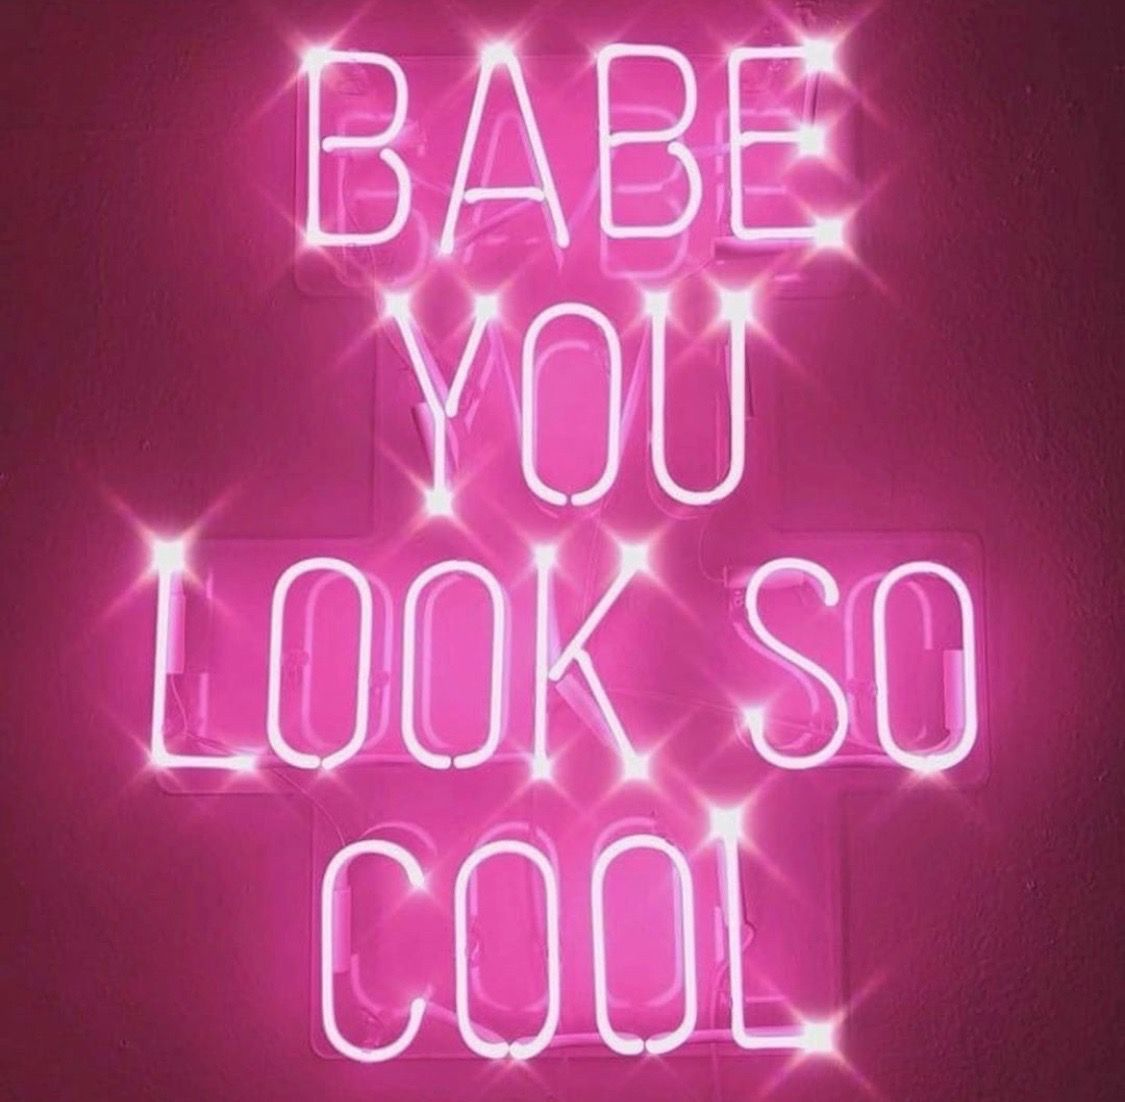 Pin by LEF on Neon Neon words